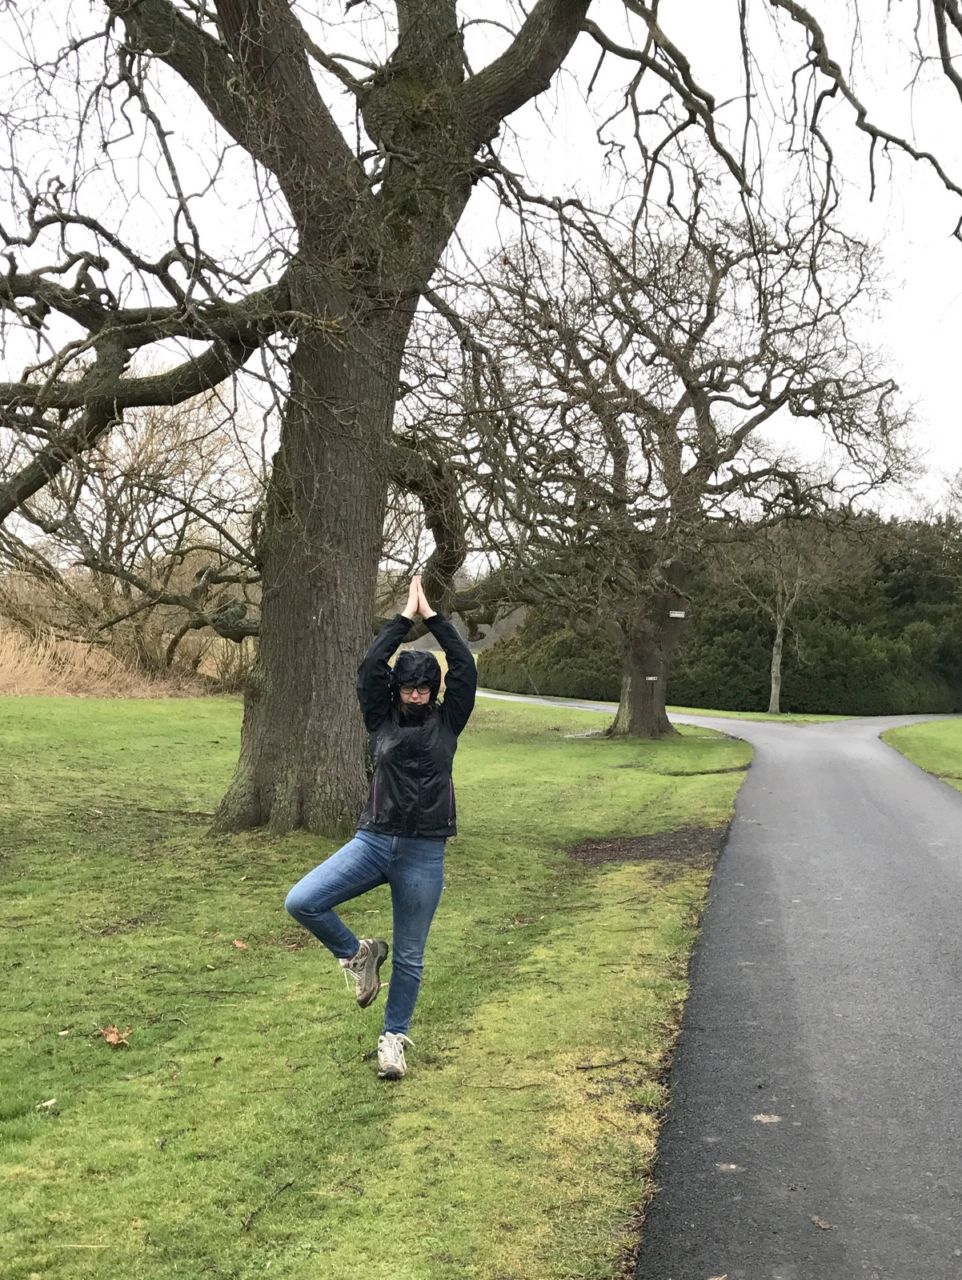 Tree pose (with a tree!)